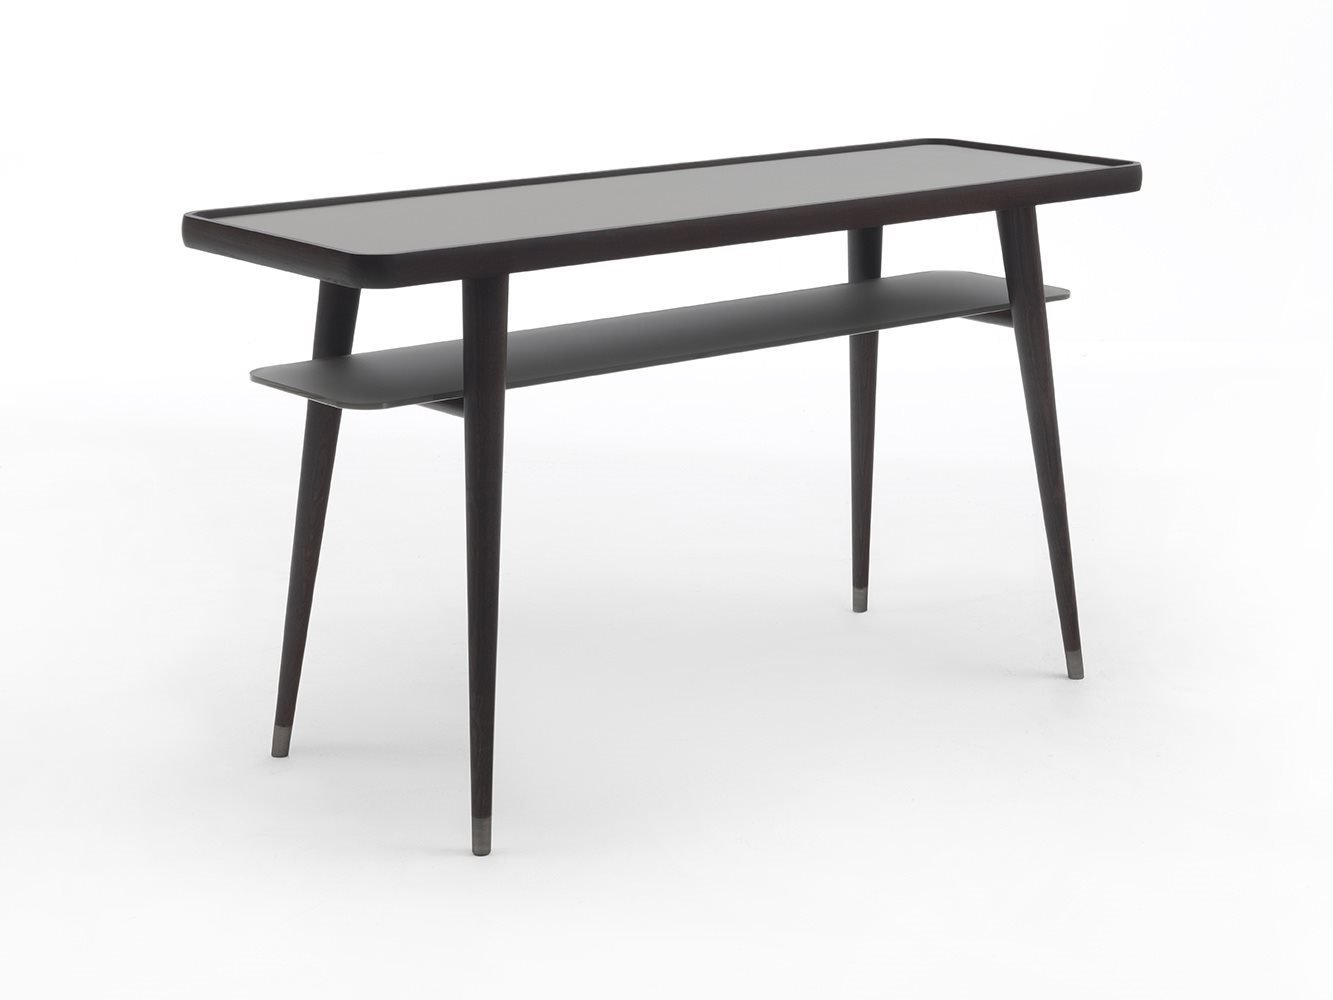 Chantal Console Table from Porada, designed by E. Garbin - M. Dell'Orto